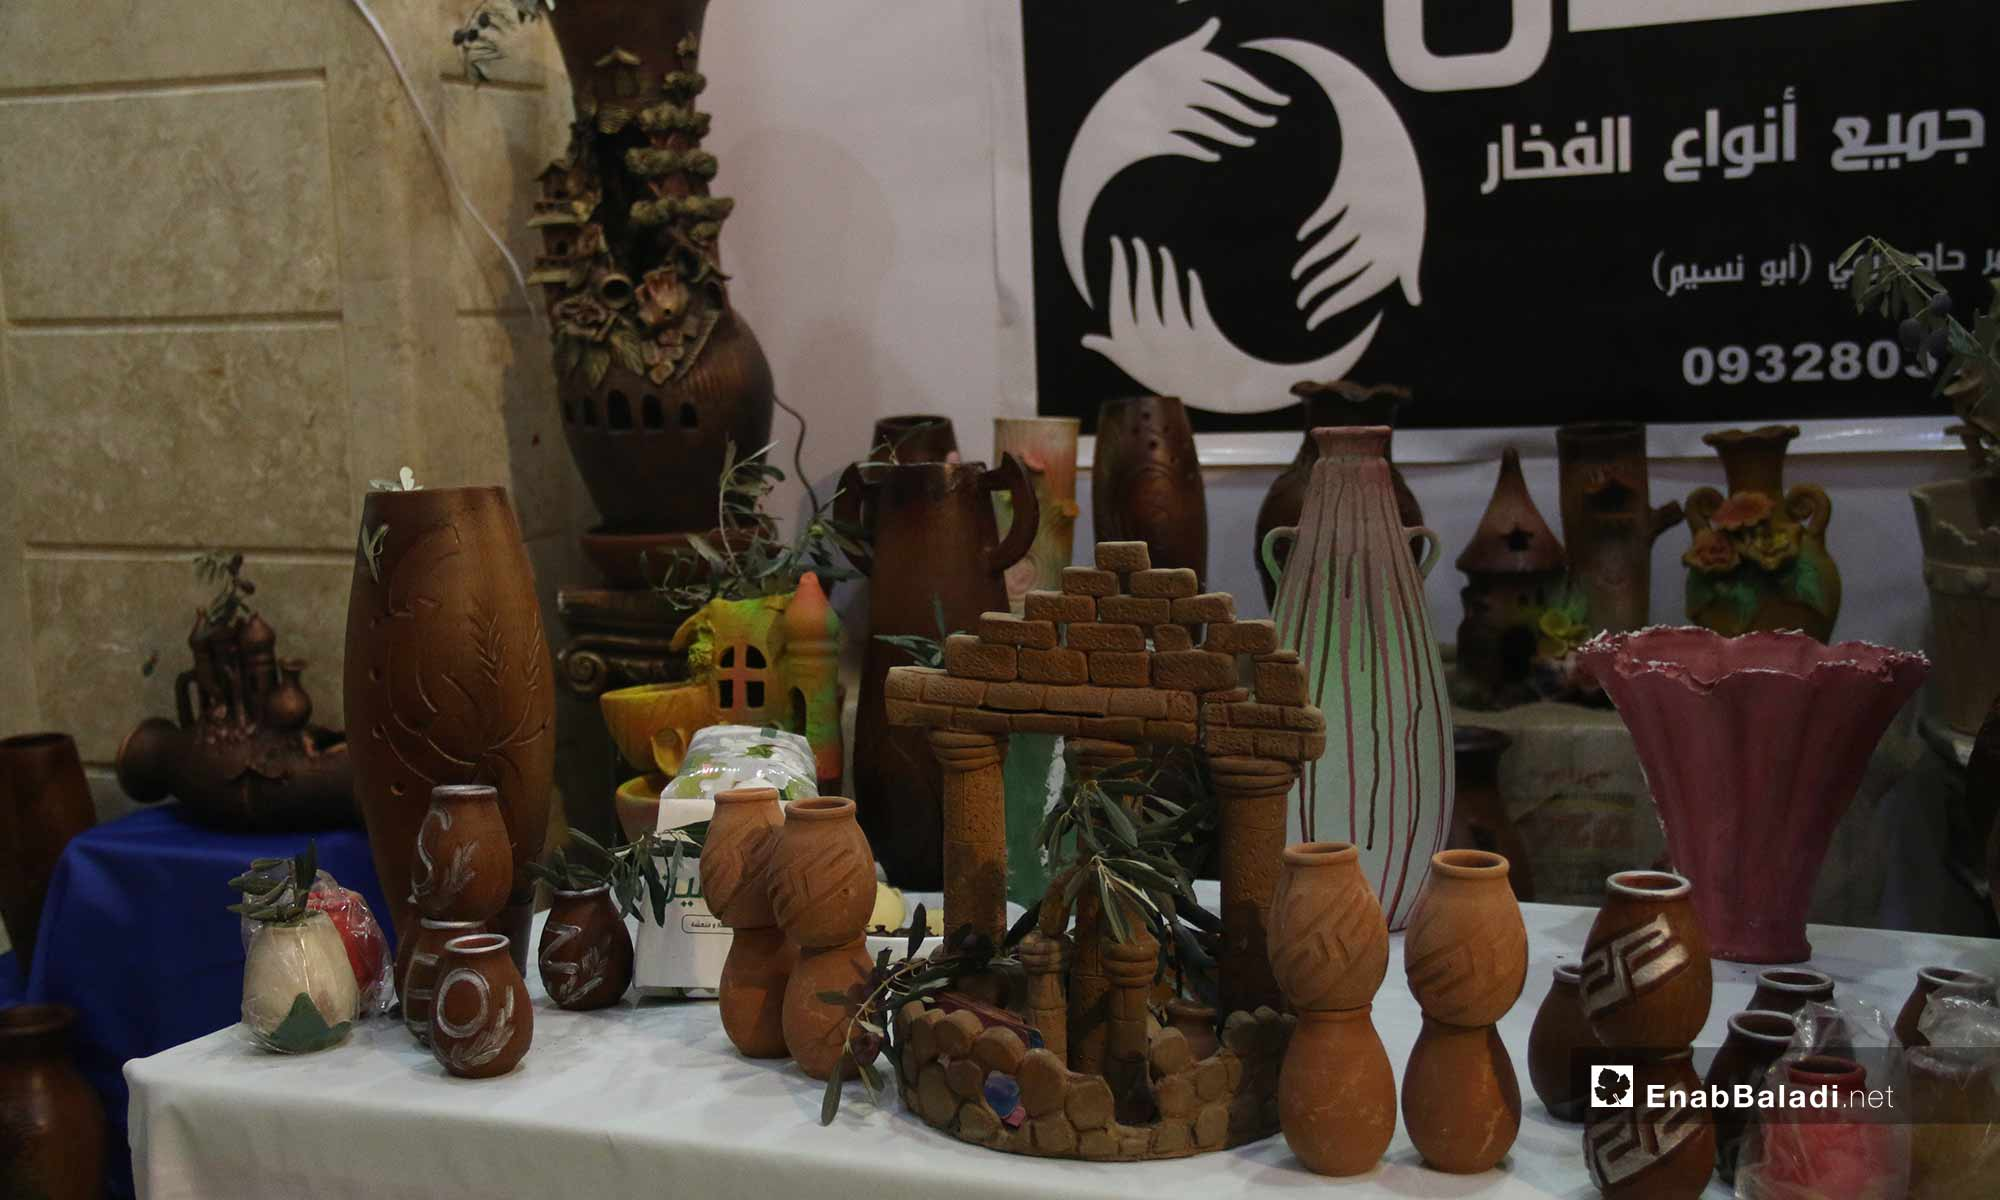 An exhibition for marketing olive products in the city of Armanaz in Idlib – December 15, 2018 (Enab Baladi)